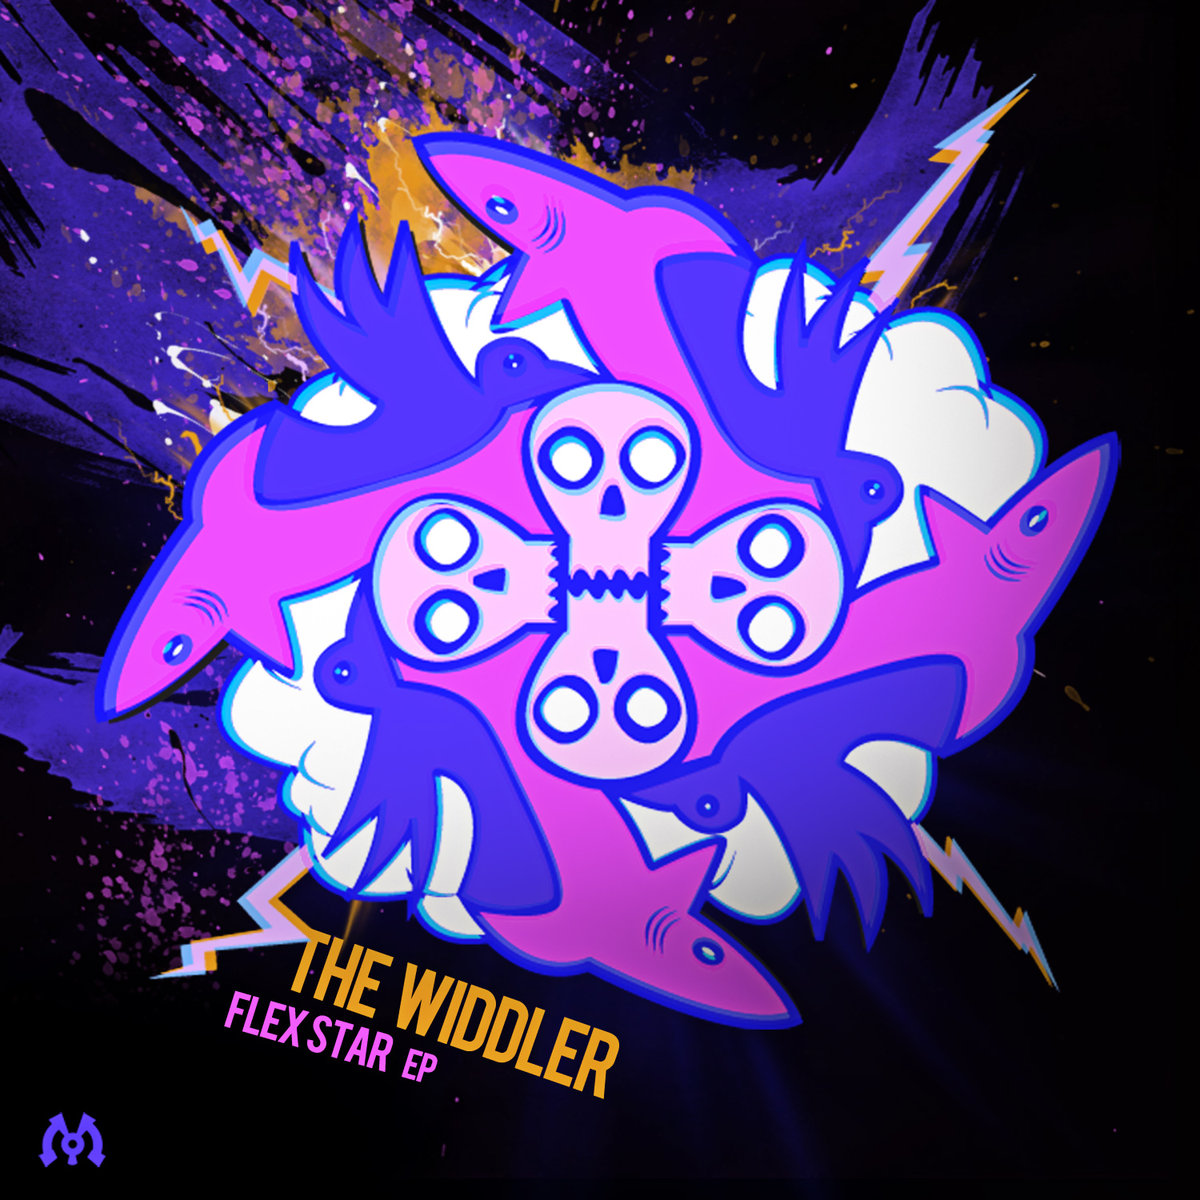 The Widdler - Flexstar (Fresh Young Minds & Bukkha Remix) @ 'Flexstar' album (electronic, dubstep)